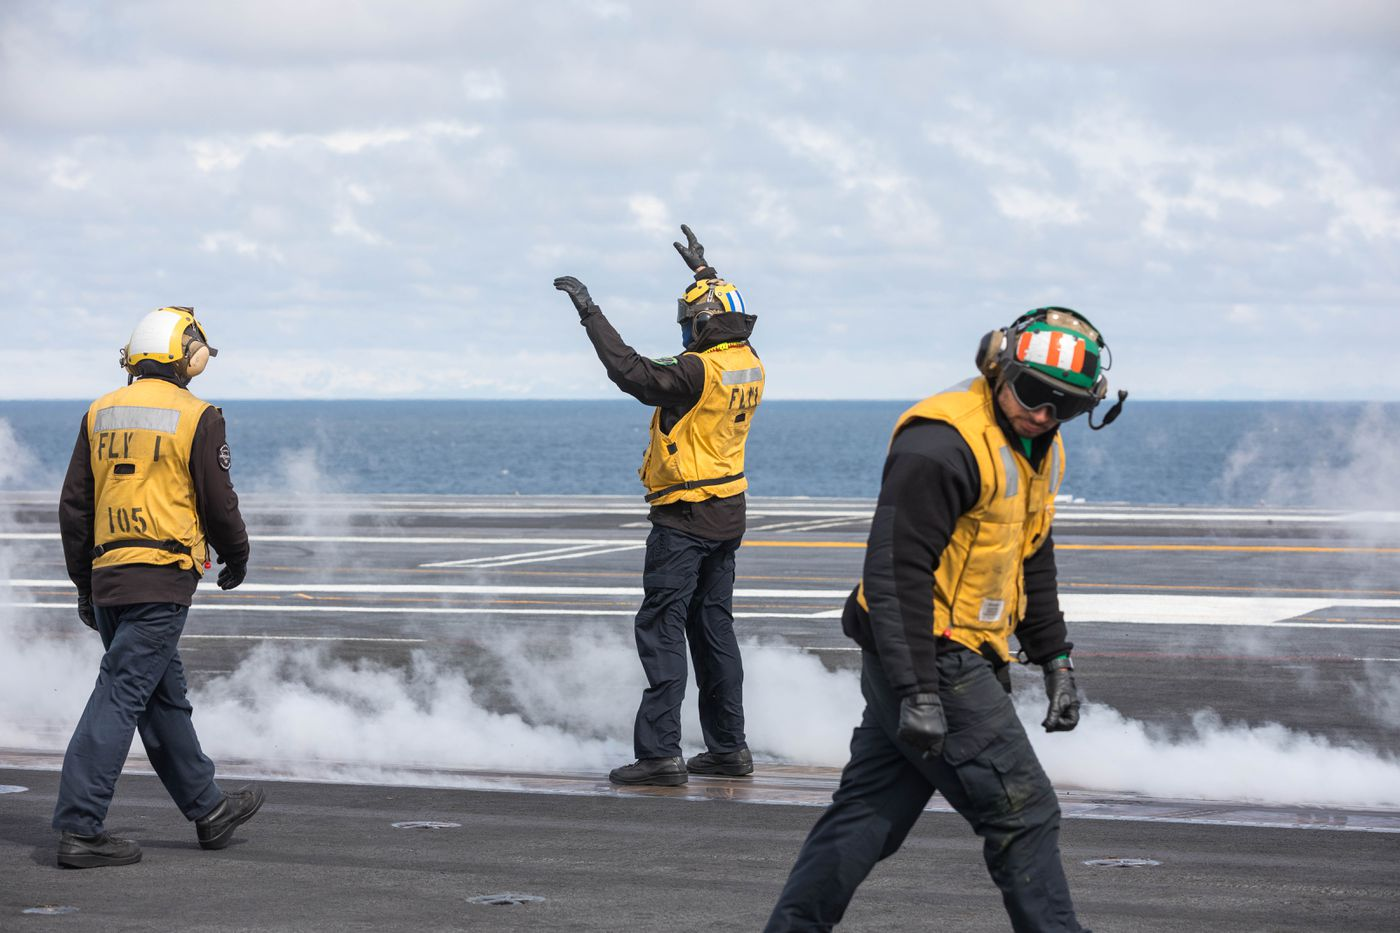 Flight deck personnel prepare for an aircraft launch on Wednesday aboard the USS Theodore Roosevelt Nimitz-class aircraft carrier in the Gulf of Alaska south of Seward. Flight deck personnel wear color-coded shirts that correspond to their job. Yellow shirts are tasked with directing planes, managing the catapult and arresting cables, and handling aircraft while they are on deck. (Loren Holmes / ADN)